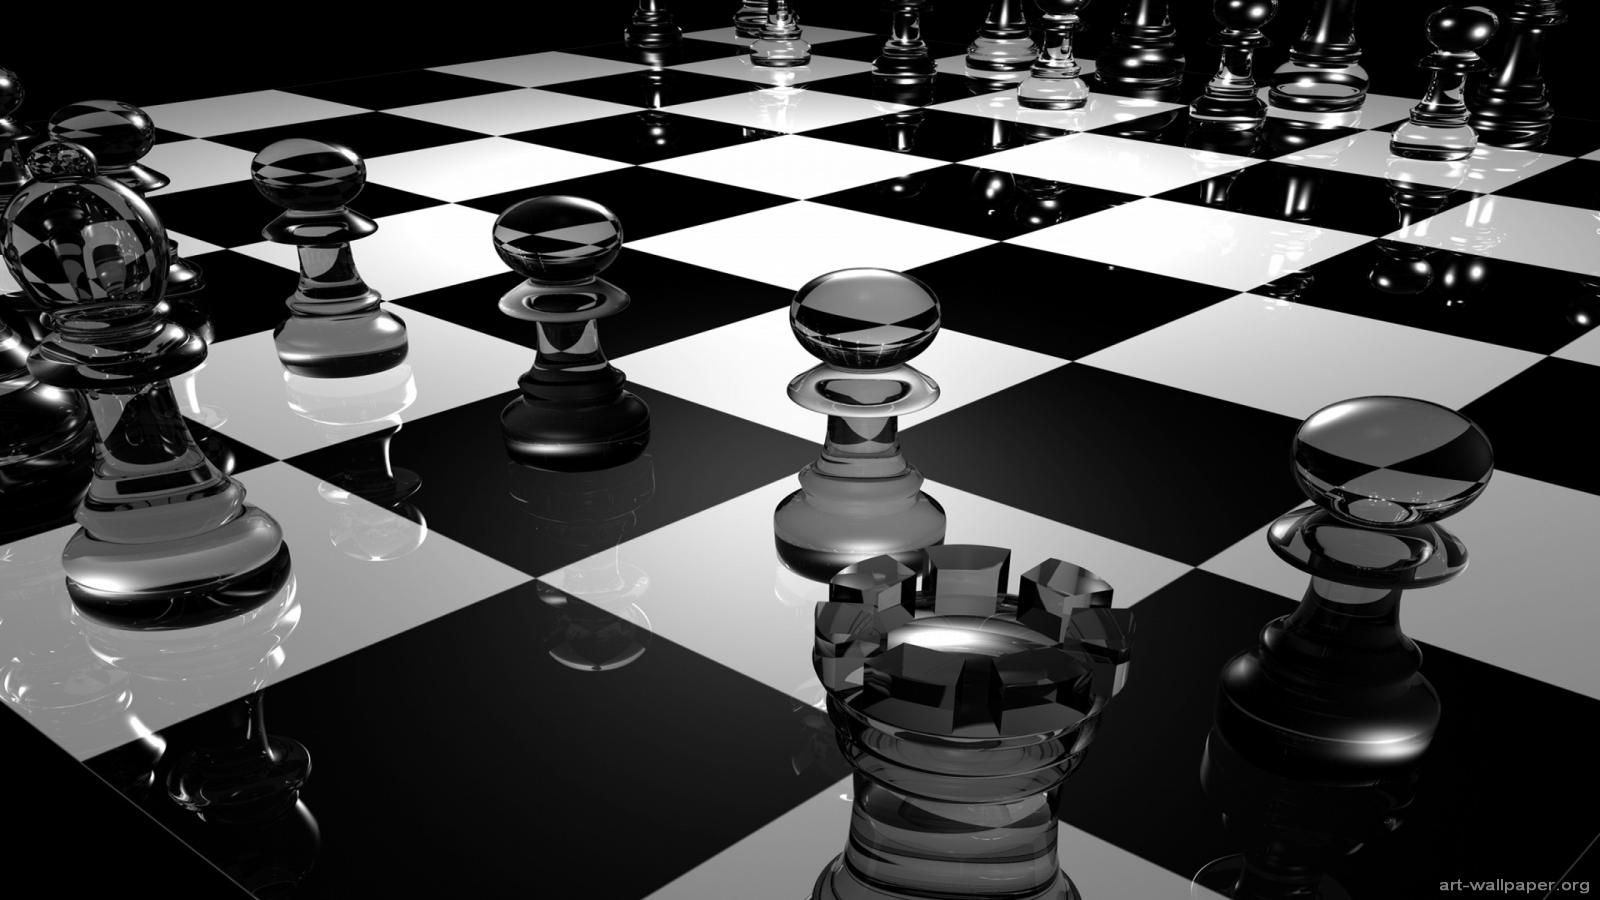 Optical illusion chessboard wallpapers and images wallpapers 1920 optical illusion chessboard wallpapers and images wallpapers chessboard wallpapers wallpapers voltagebd Choice Image